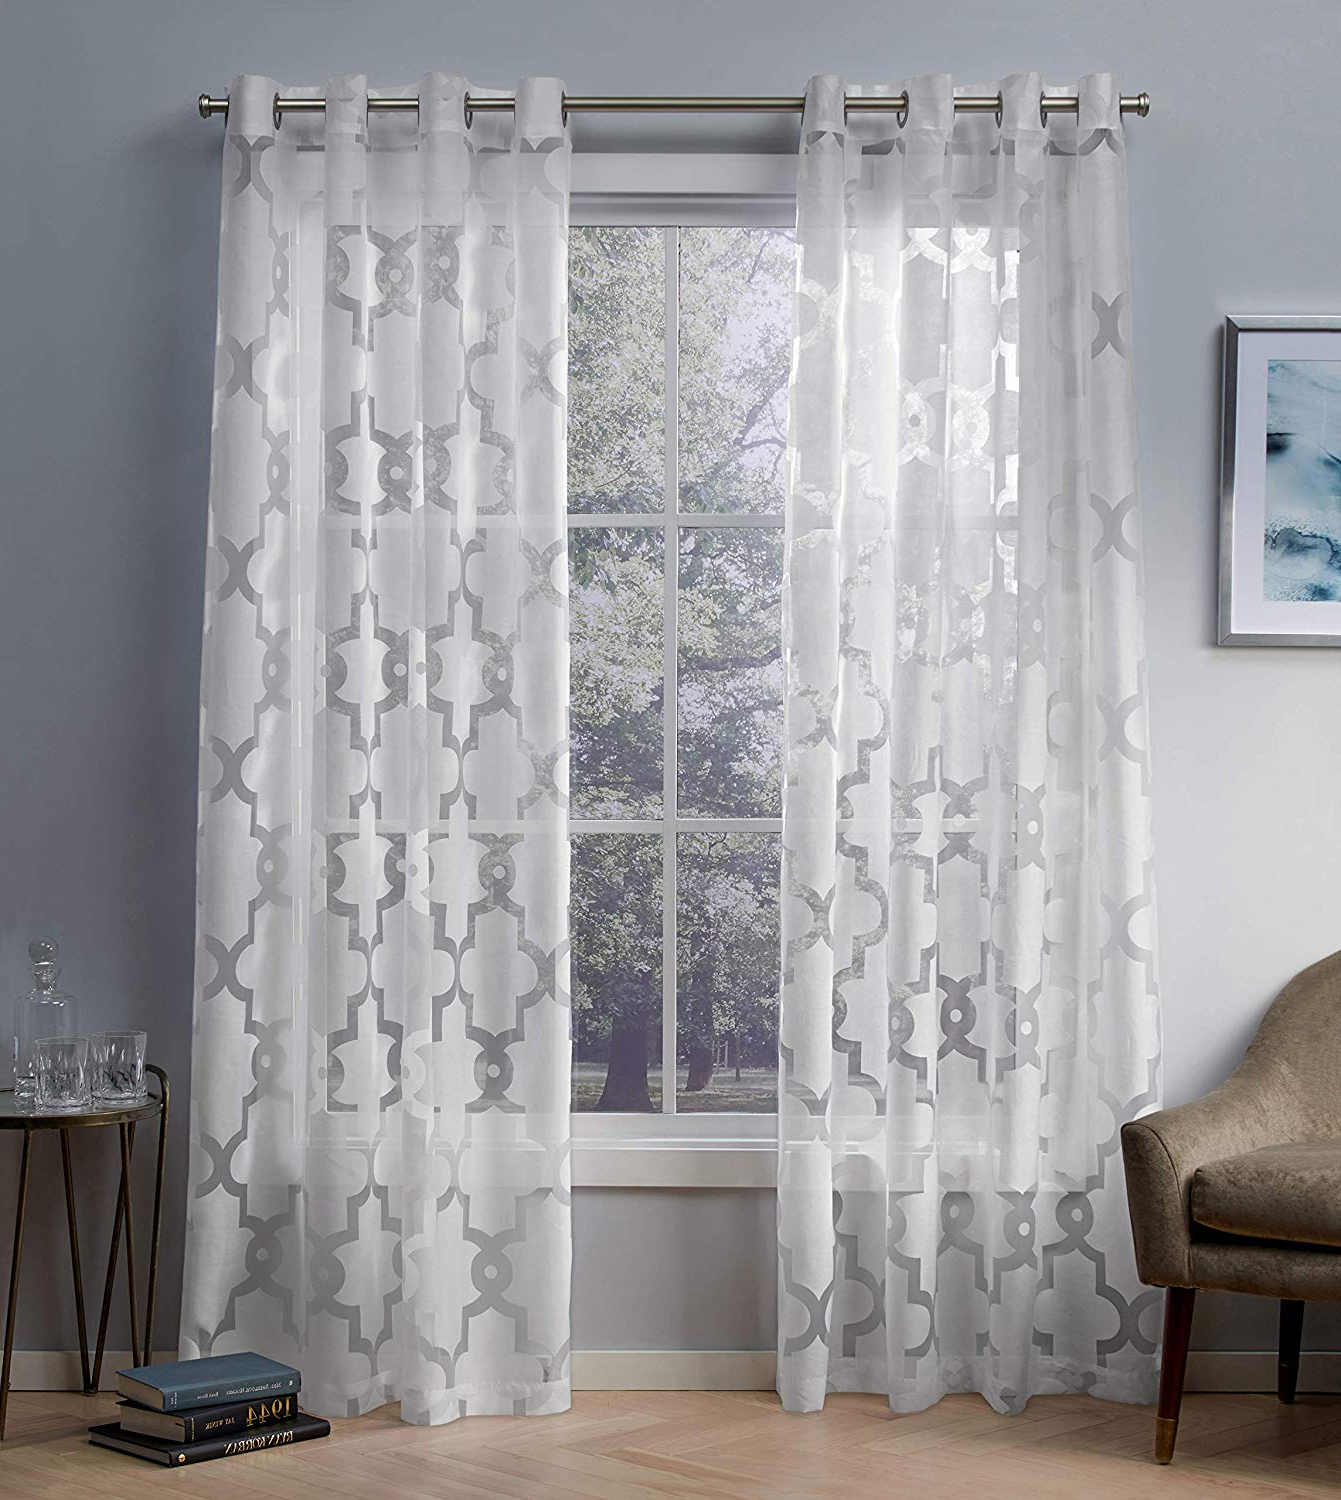 Most Current Penny Sheer Grommet Top Curtain Panel Pairs For Exclusive Home Curtains Essex Geometric Sheer Burnout Window Curtain Panel Pair With Grommet Top, 52X96, Winter White, 2 Piece (Gallery 9 of 20)